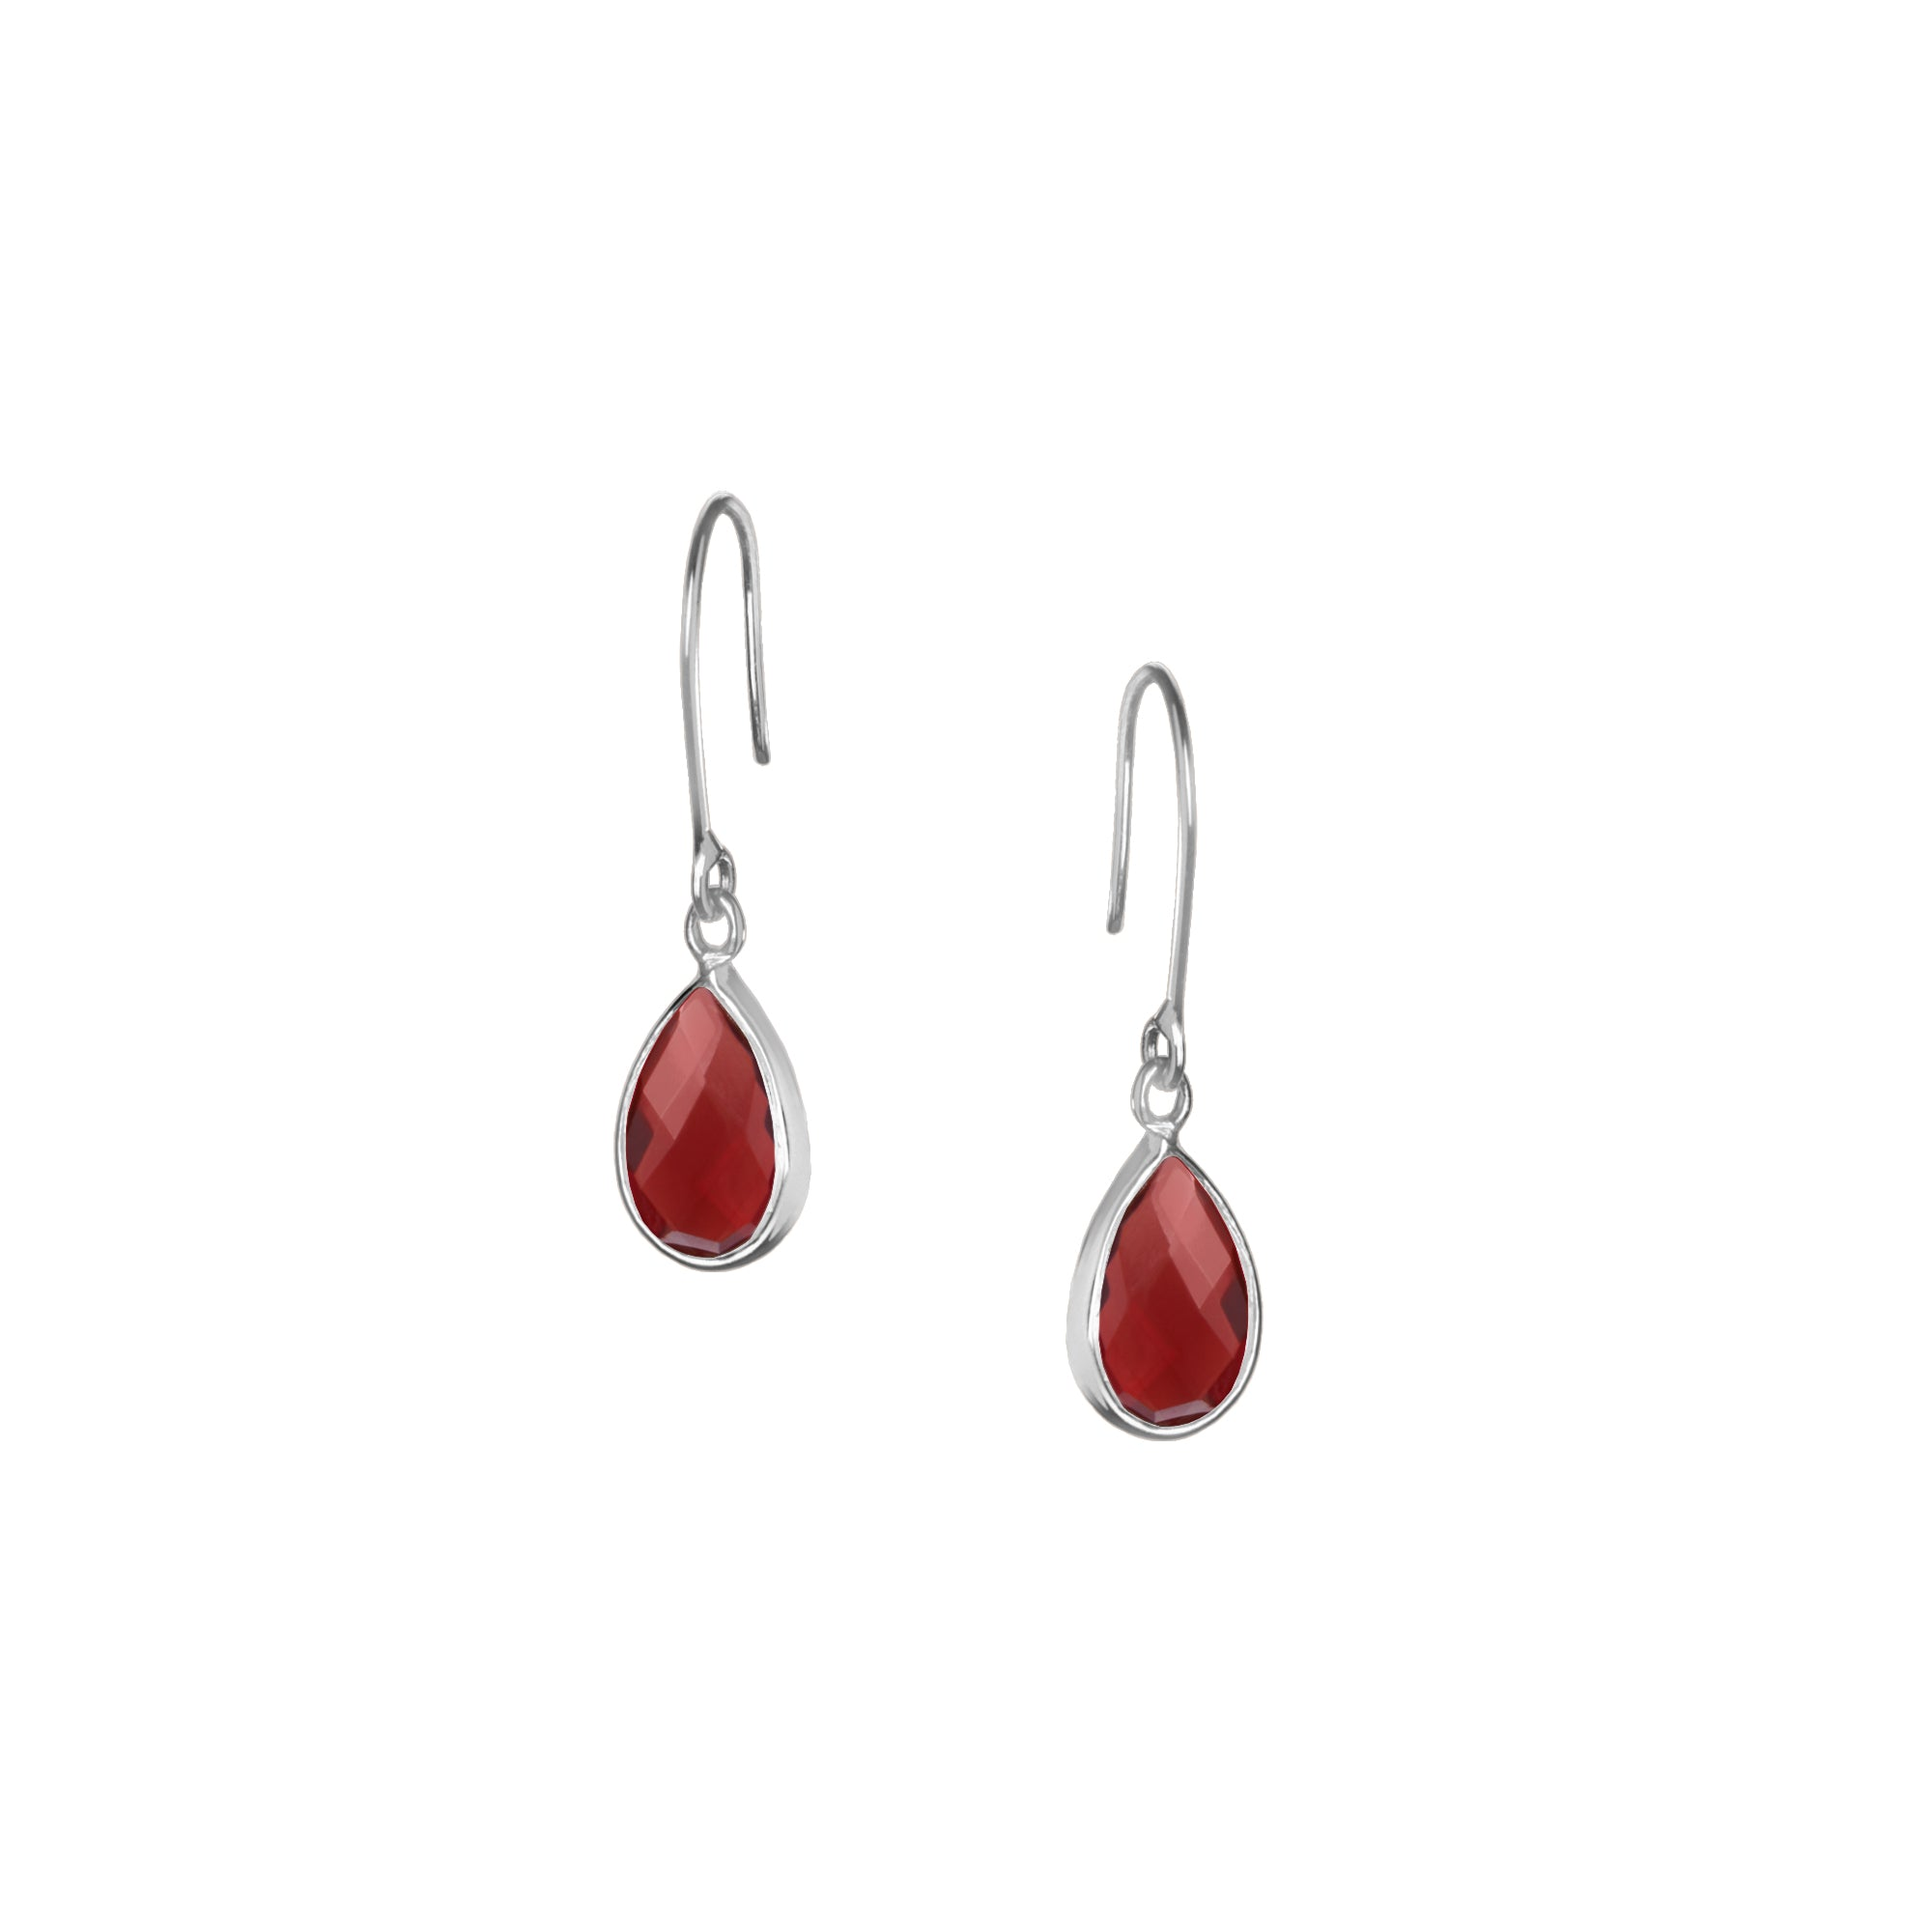 Tear Drop Earring in Silver with Red Iolite